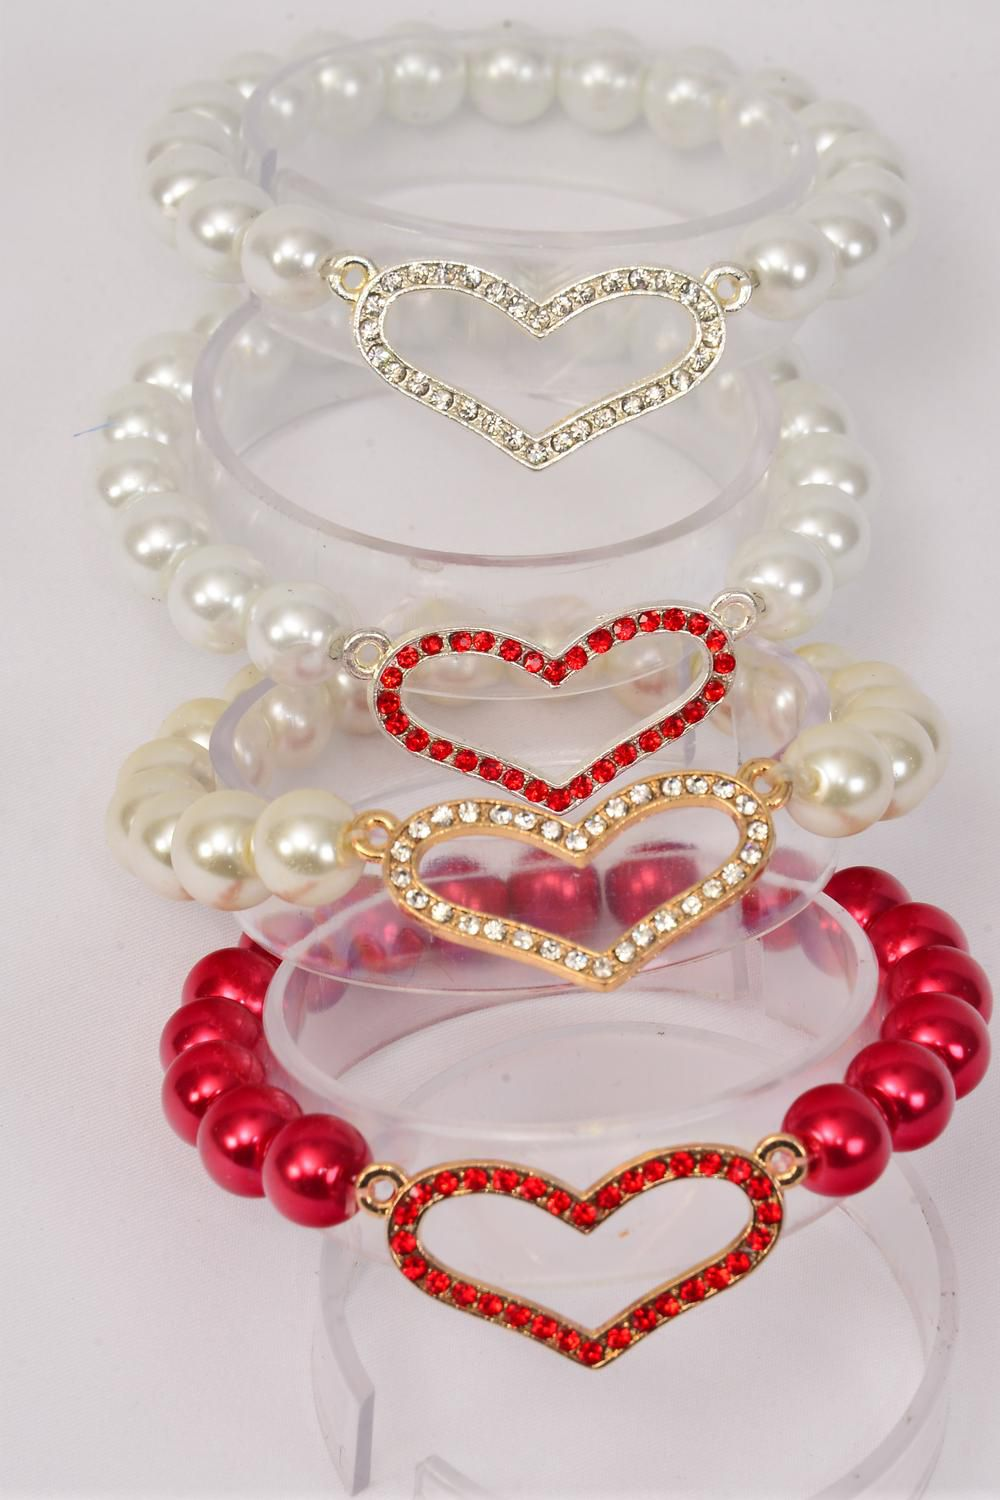 "Bracelet 10 mm Glass Pearl W Rhinestone Heart/DZ **Stretch** Heart Size-1.25""x 1"" Wide, 3 of each Color Asst,Hang Tag & OPP bag & UPC Code -"